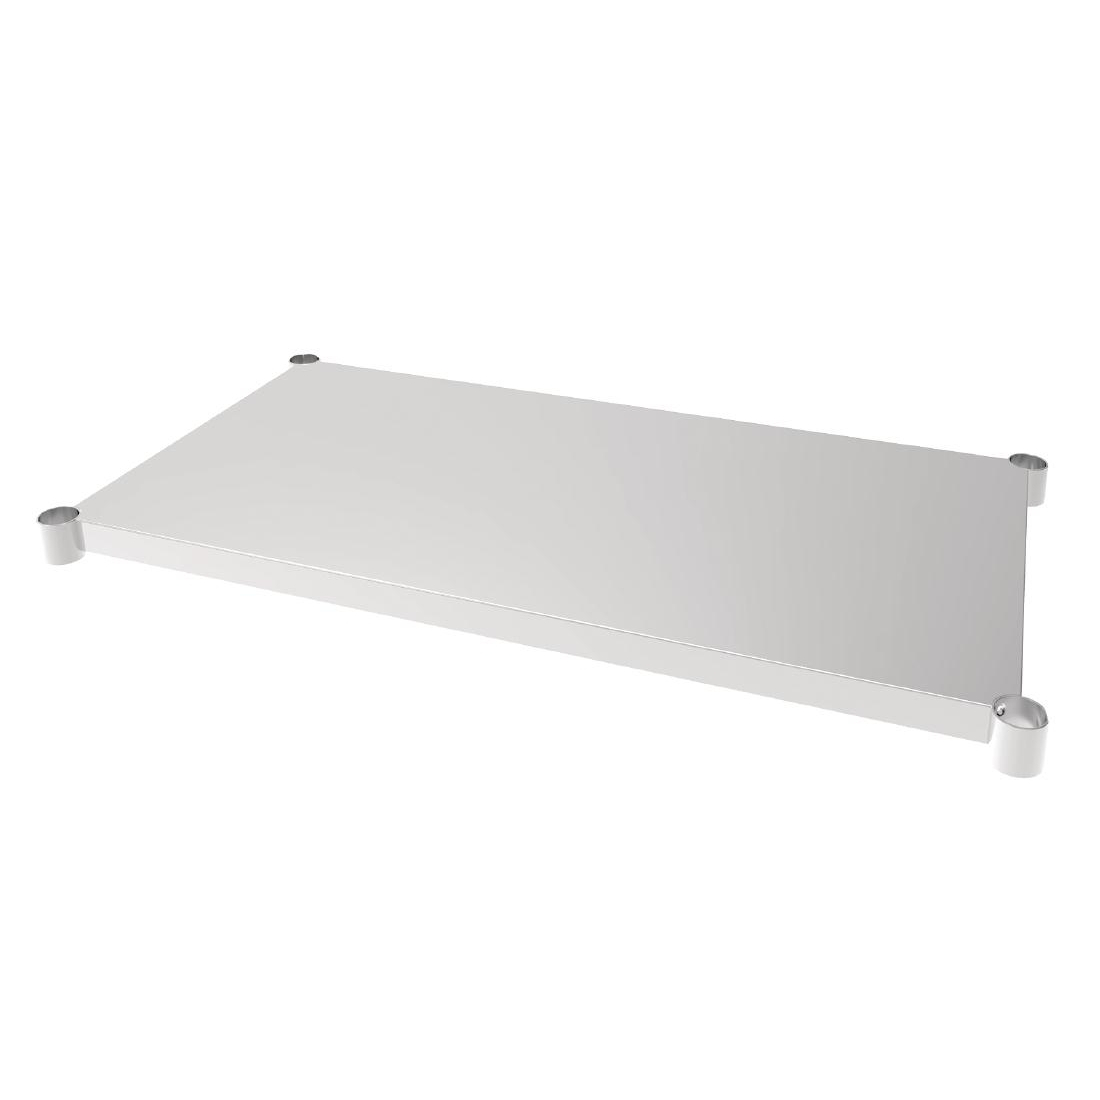 Vogue Stainless Steel Table Shelf 700x1200mm